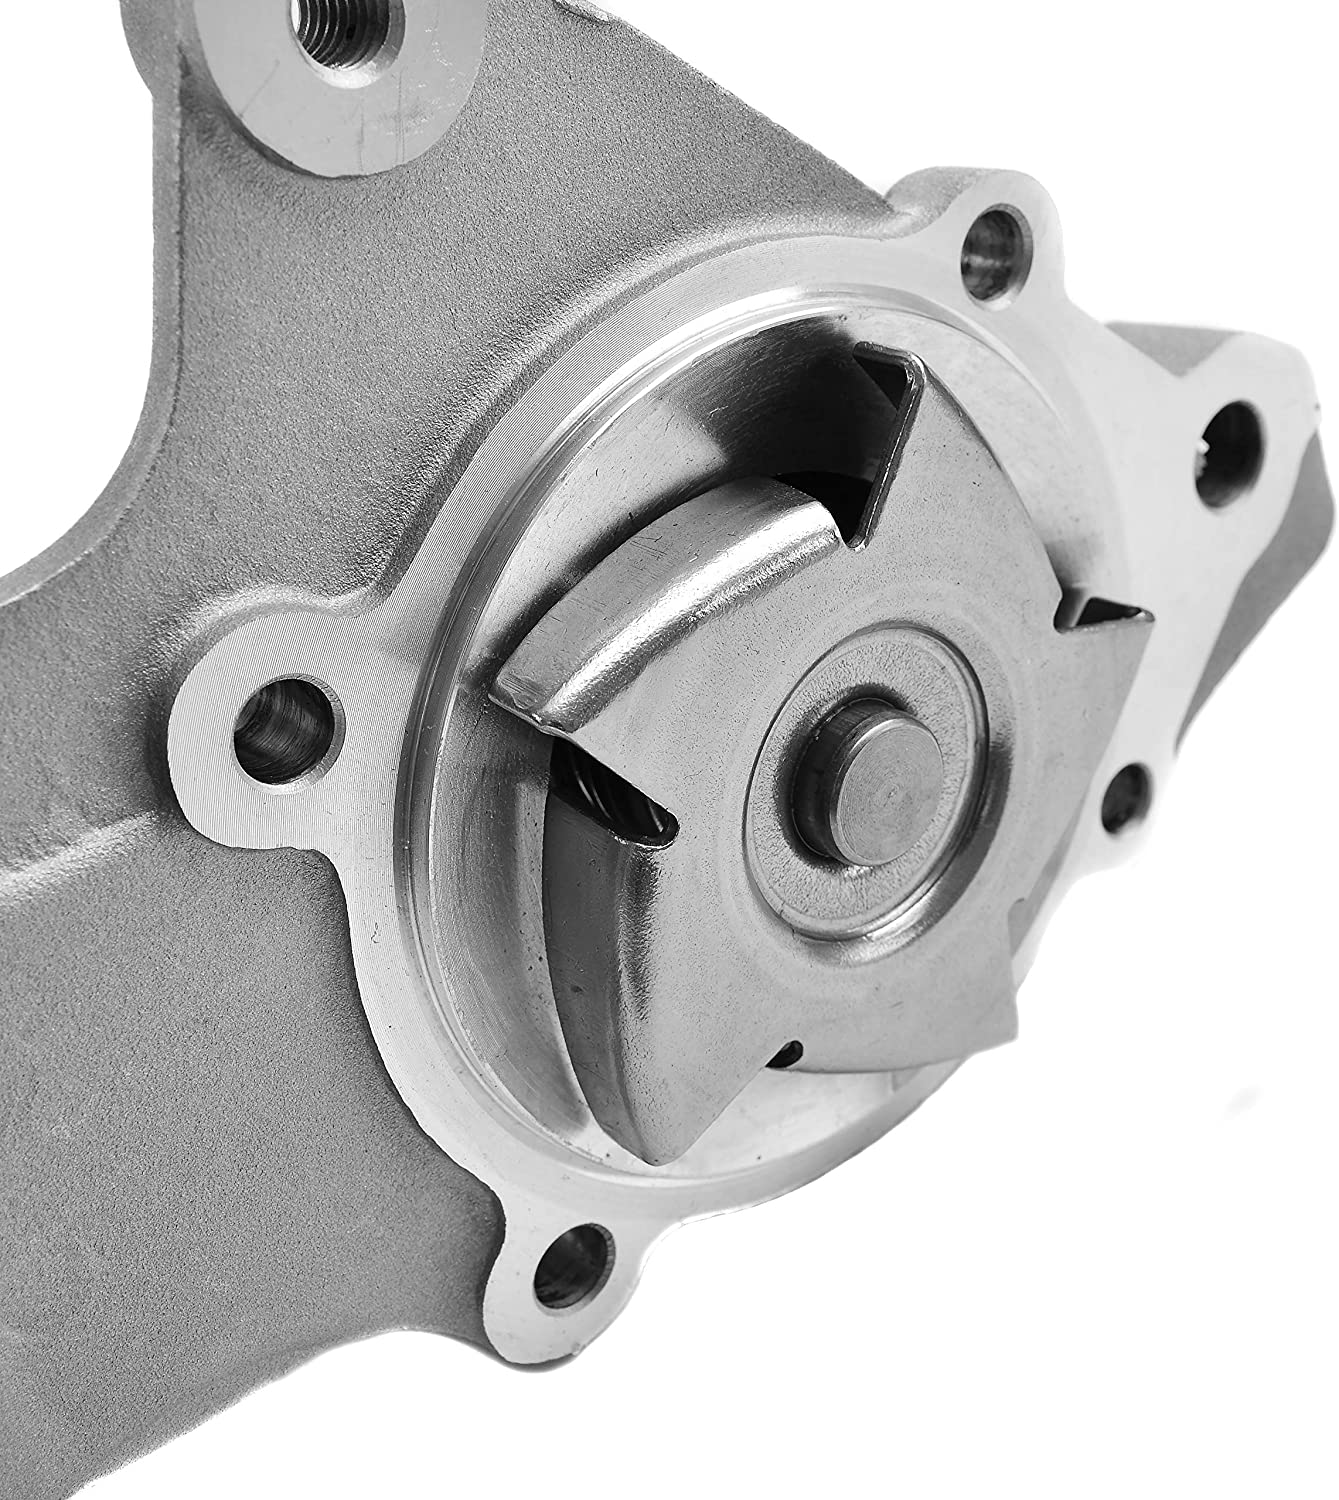 Doogo AW3412 Professional Water Pump Kit with Gasket Compatible with Dodge Dakota Jeep Wrangler Comanche Cherokee Grand Cherokee 2.5L 4.0L Engine